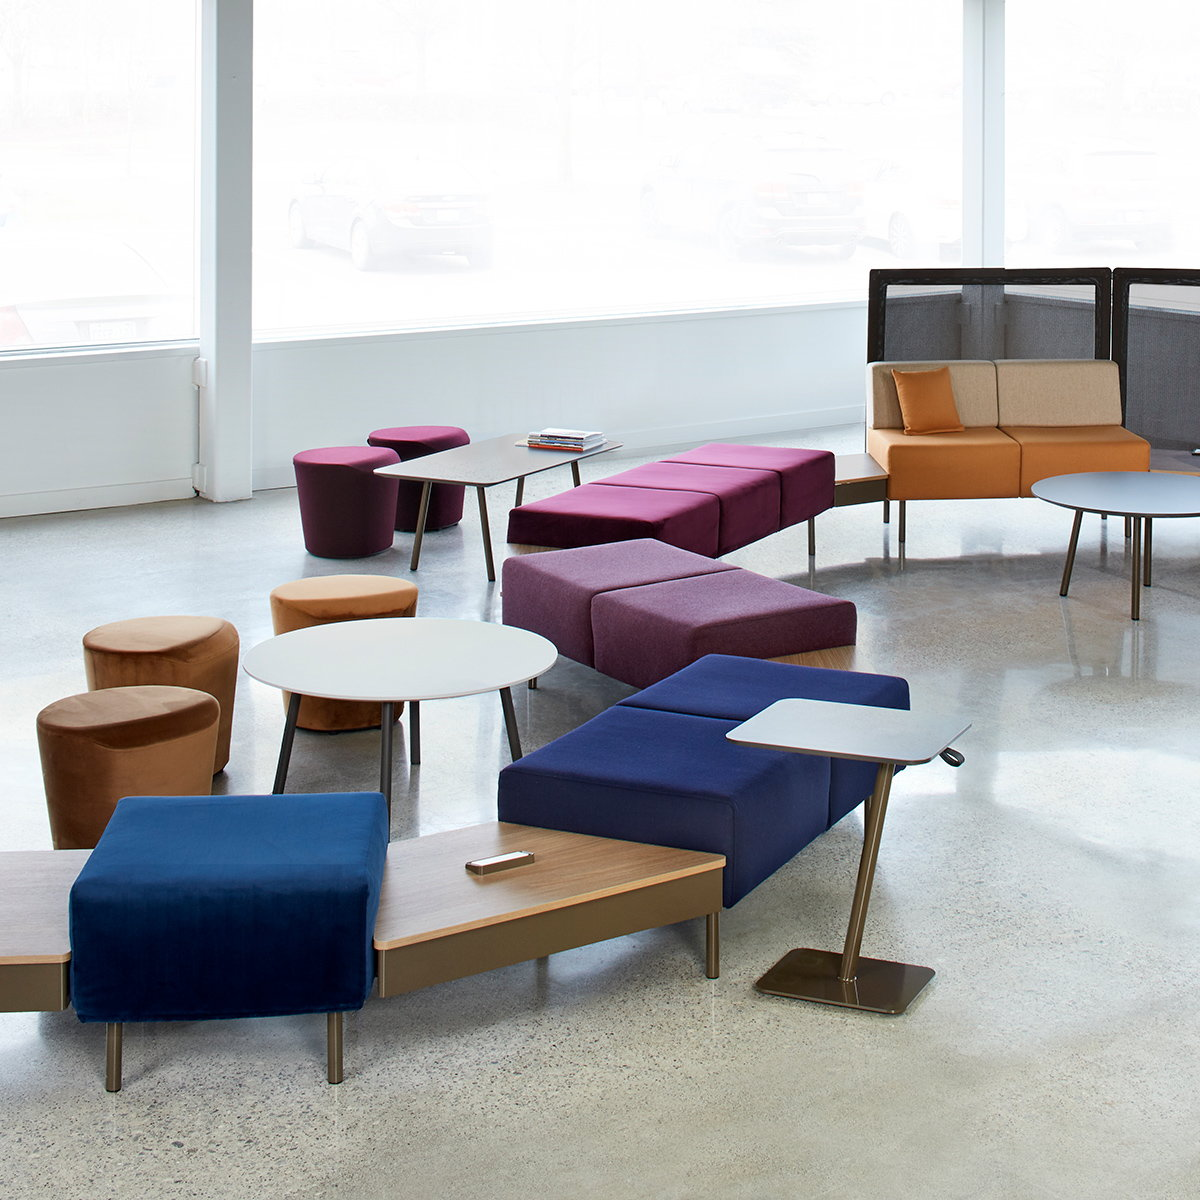 Allseating's Exchange and Zinc Recognized in 2018 GOOD DESIGN Awards